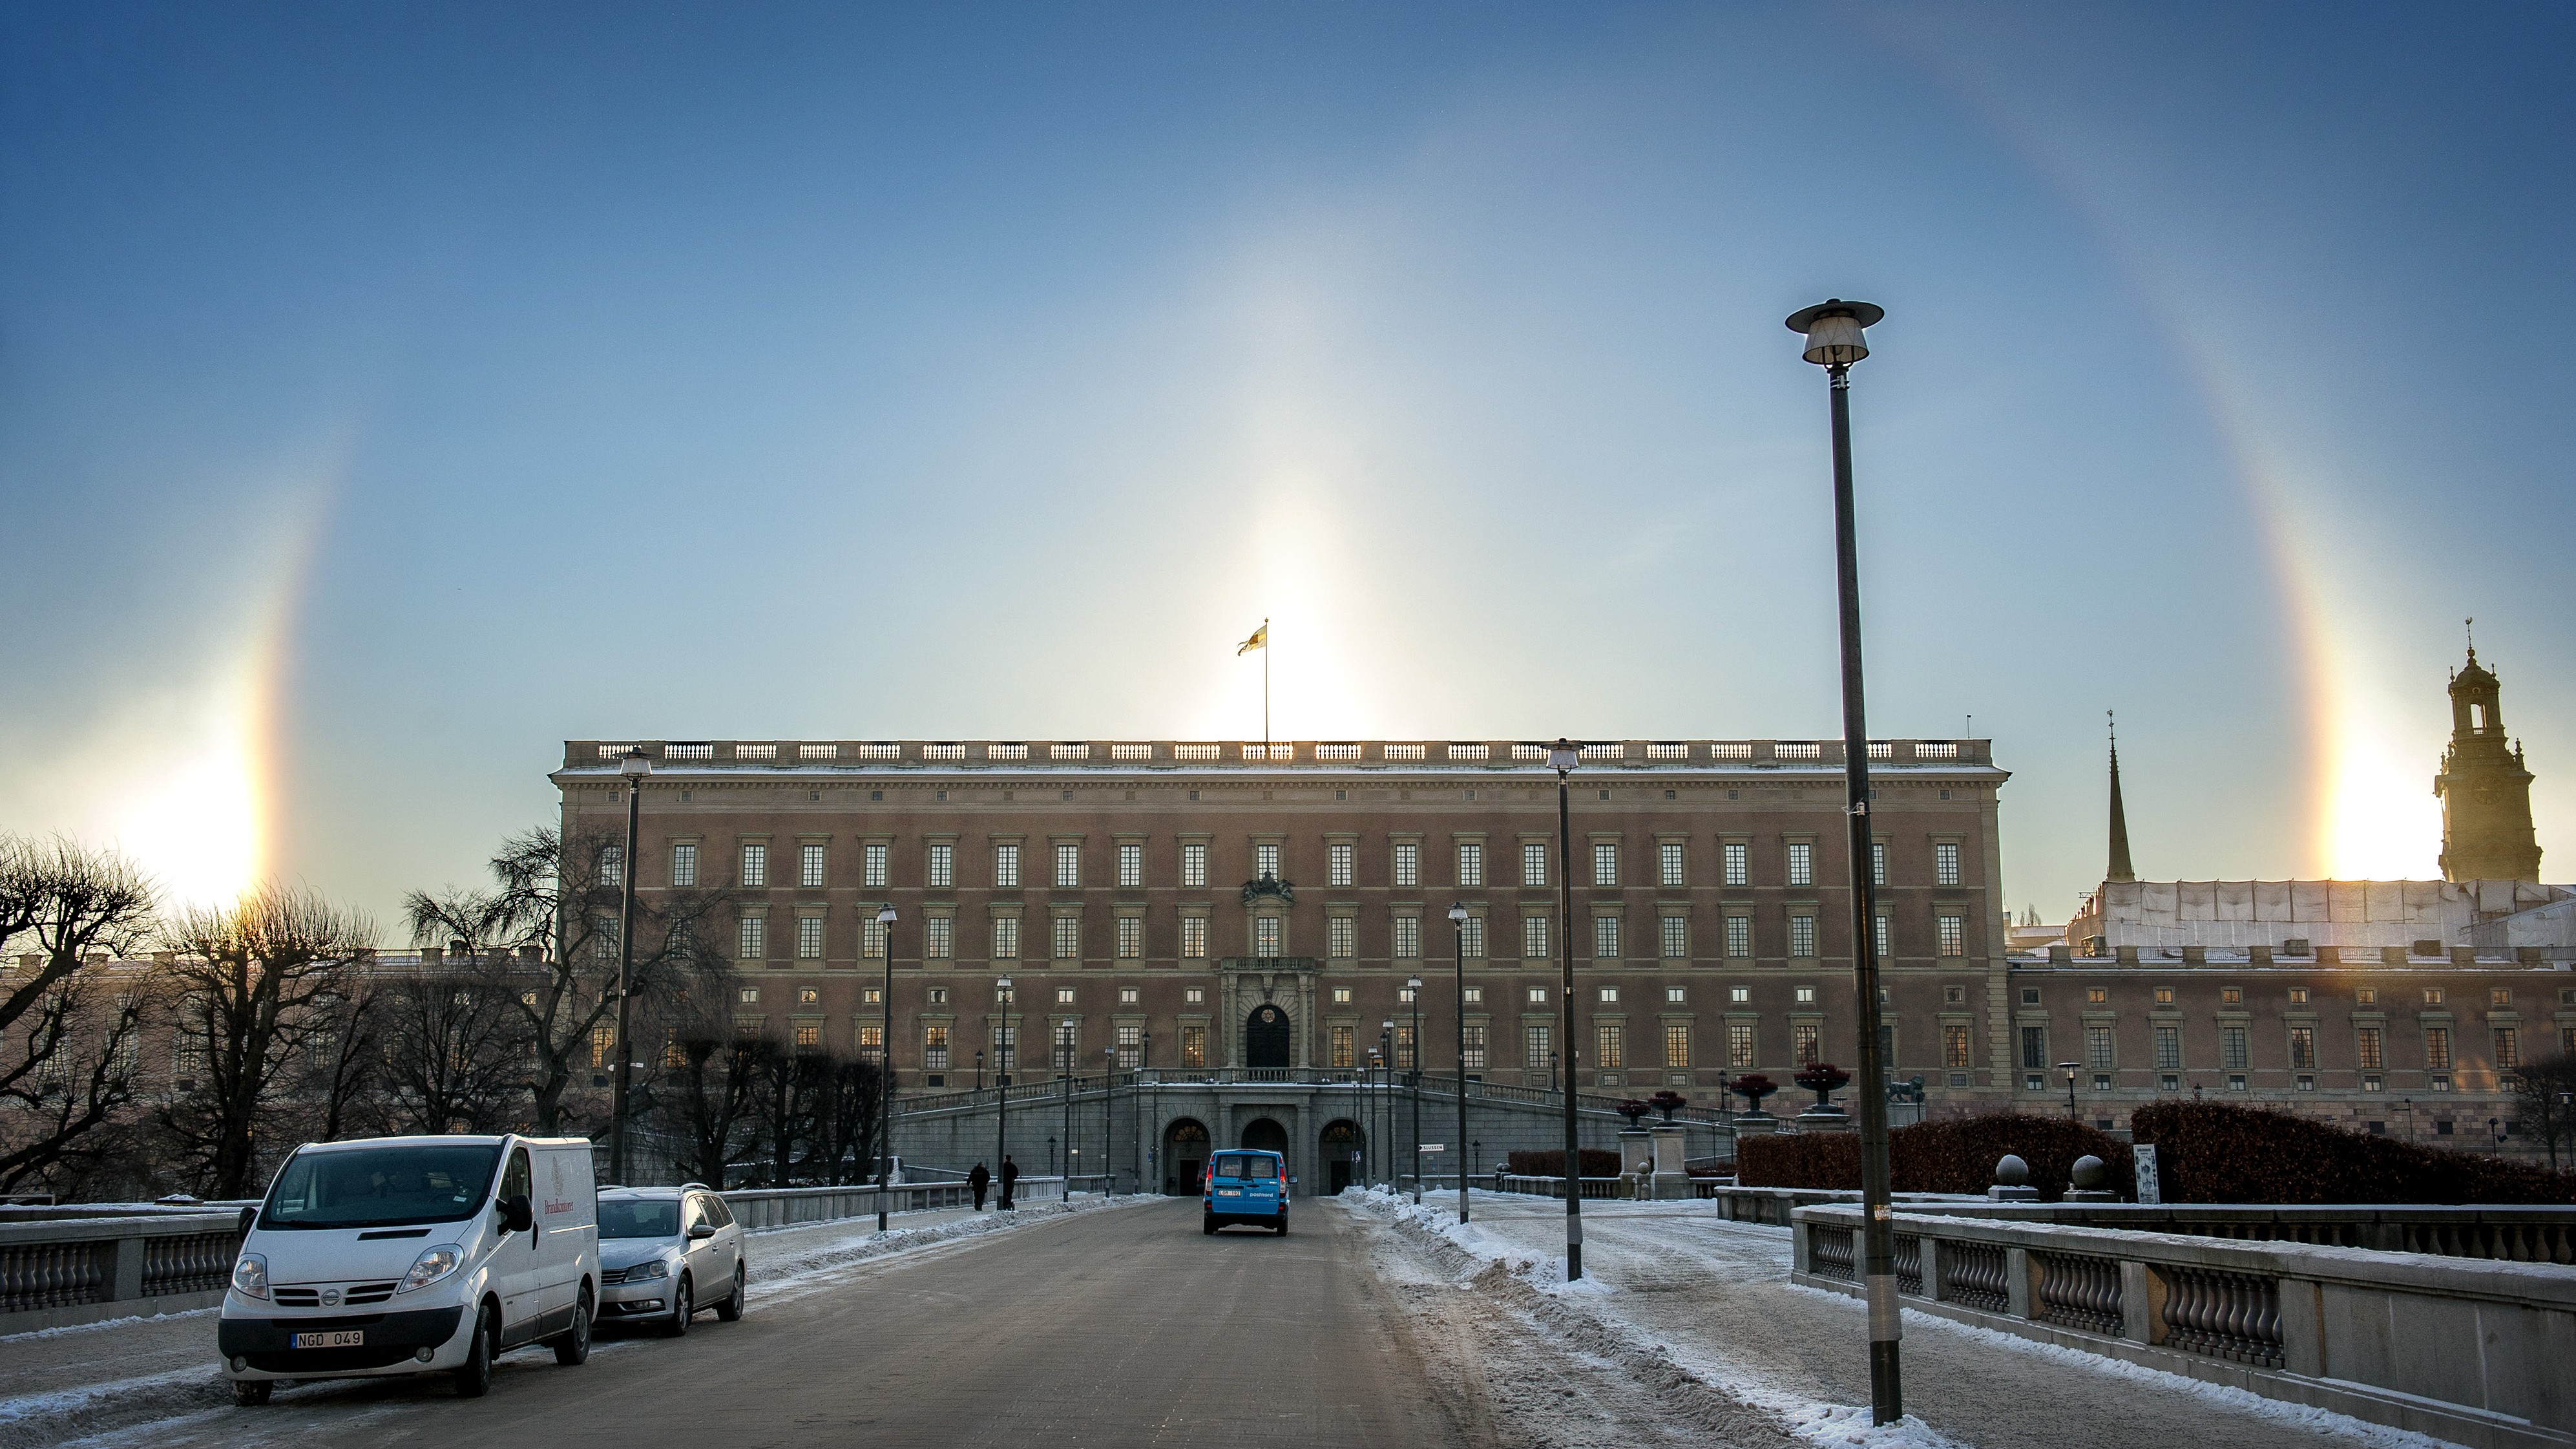 epa05118284 A halo appears around the Royal Palace in Stockholm, Sweden, 22 January 2016. A halo is an optical phenomenon produced by light interacting with ice crystals.